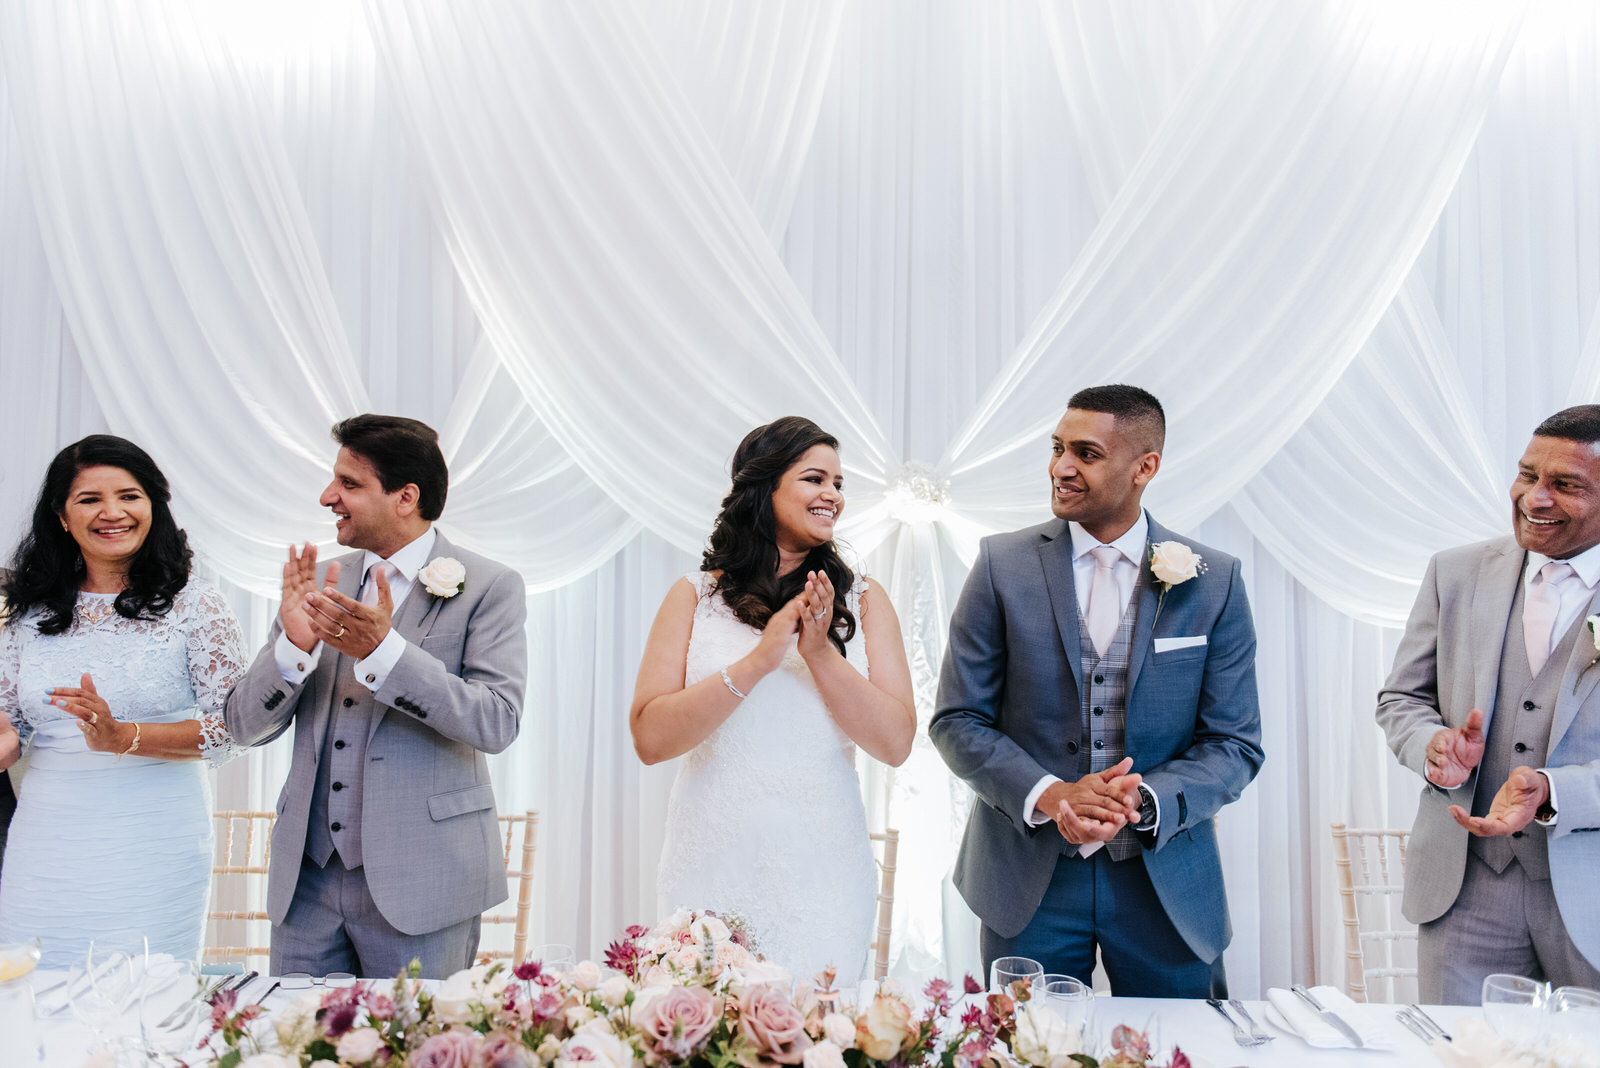 Bride and groom clap at head table as everyone welcomes them int